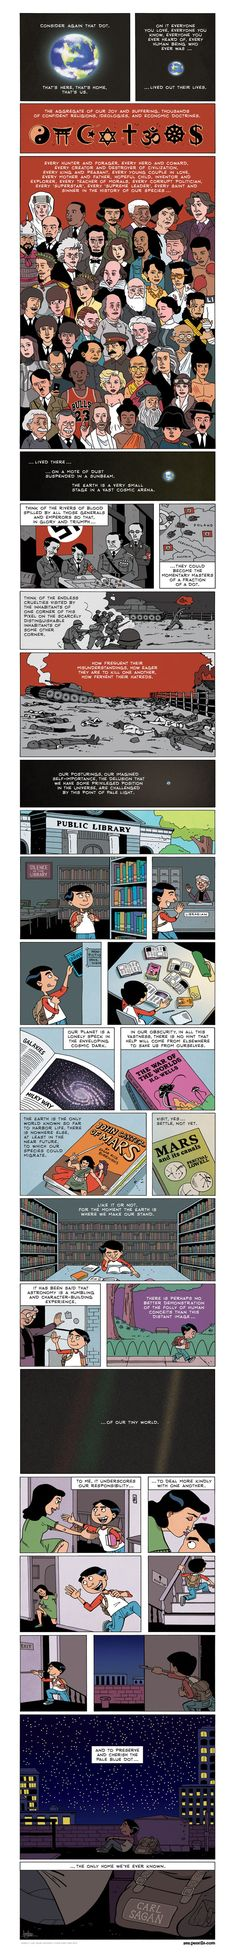 Zen Pencils Comic Strip, February 17, 2014 on GoComics.com